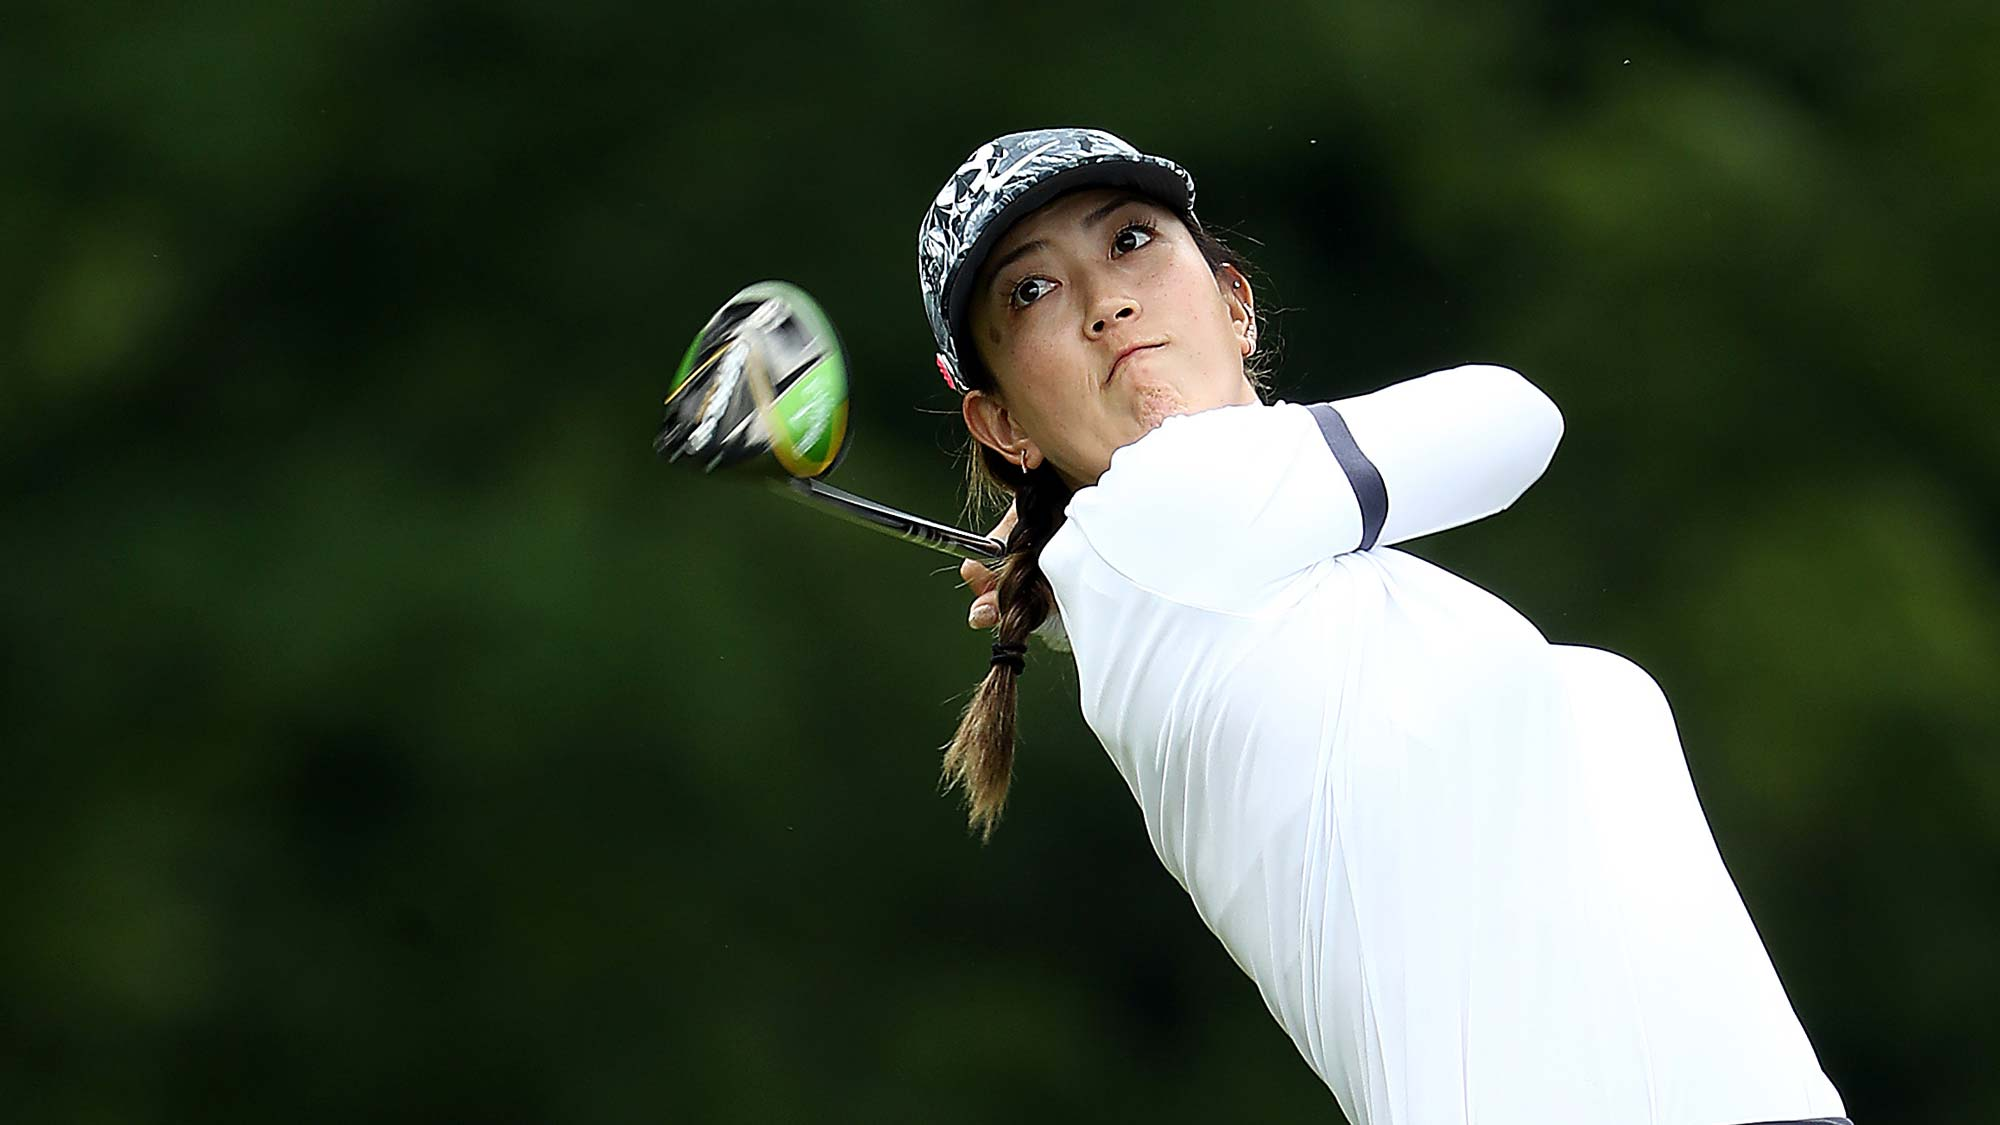 Michelle Wie hits her first shot on the 15th hole during the first round of the KPMG Women's PGA Championship